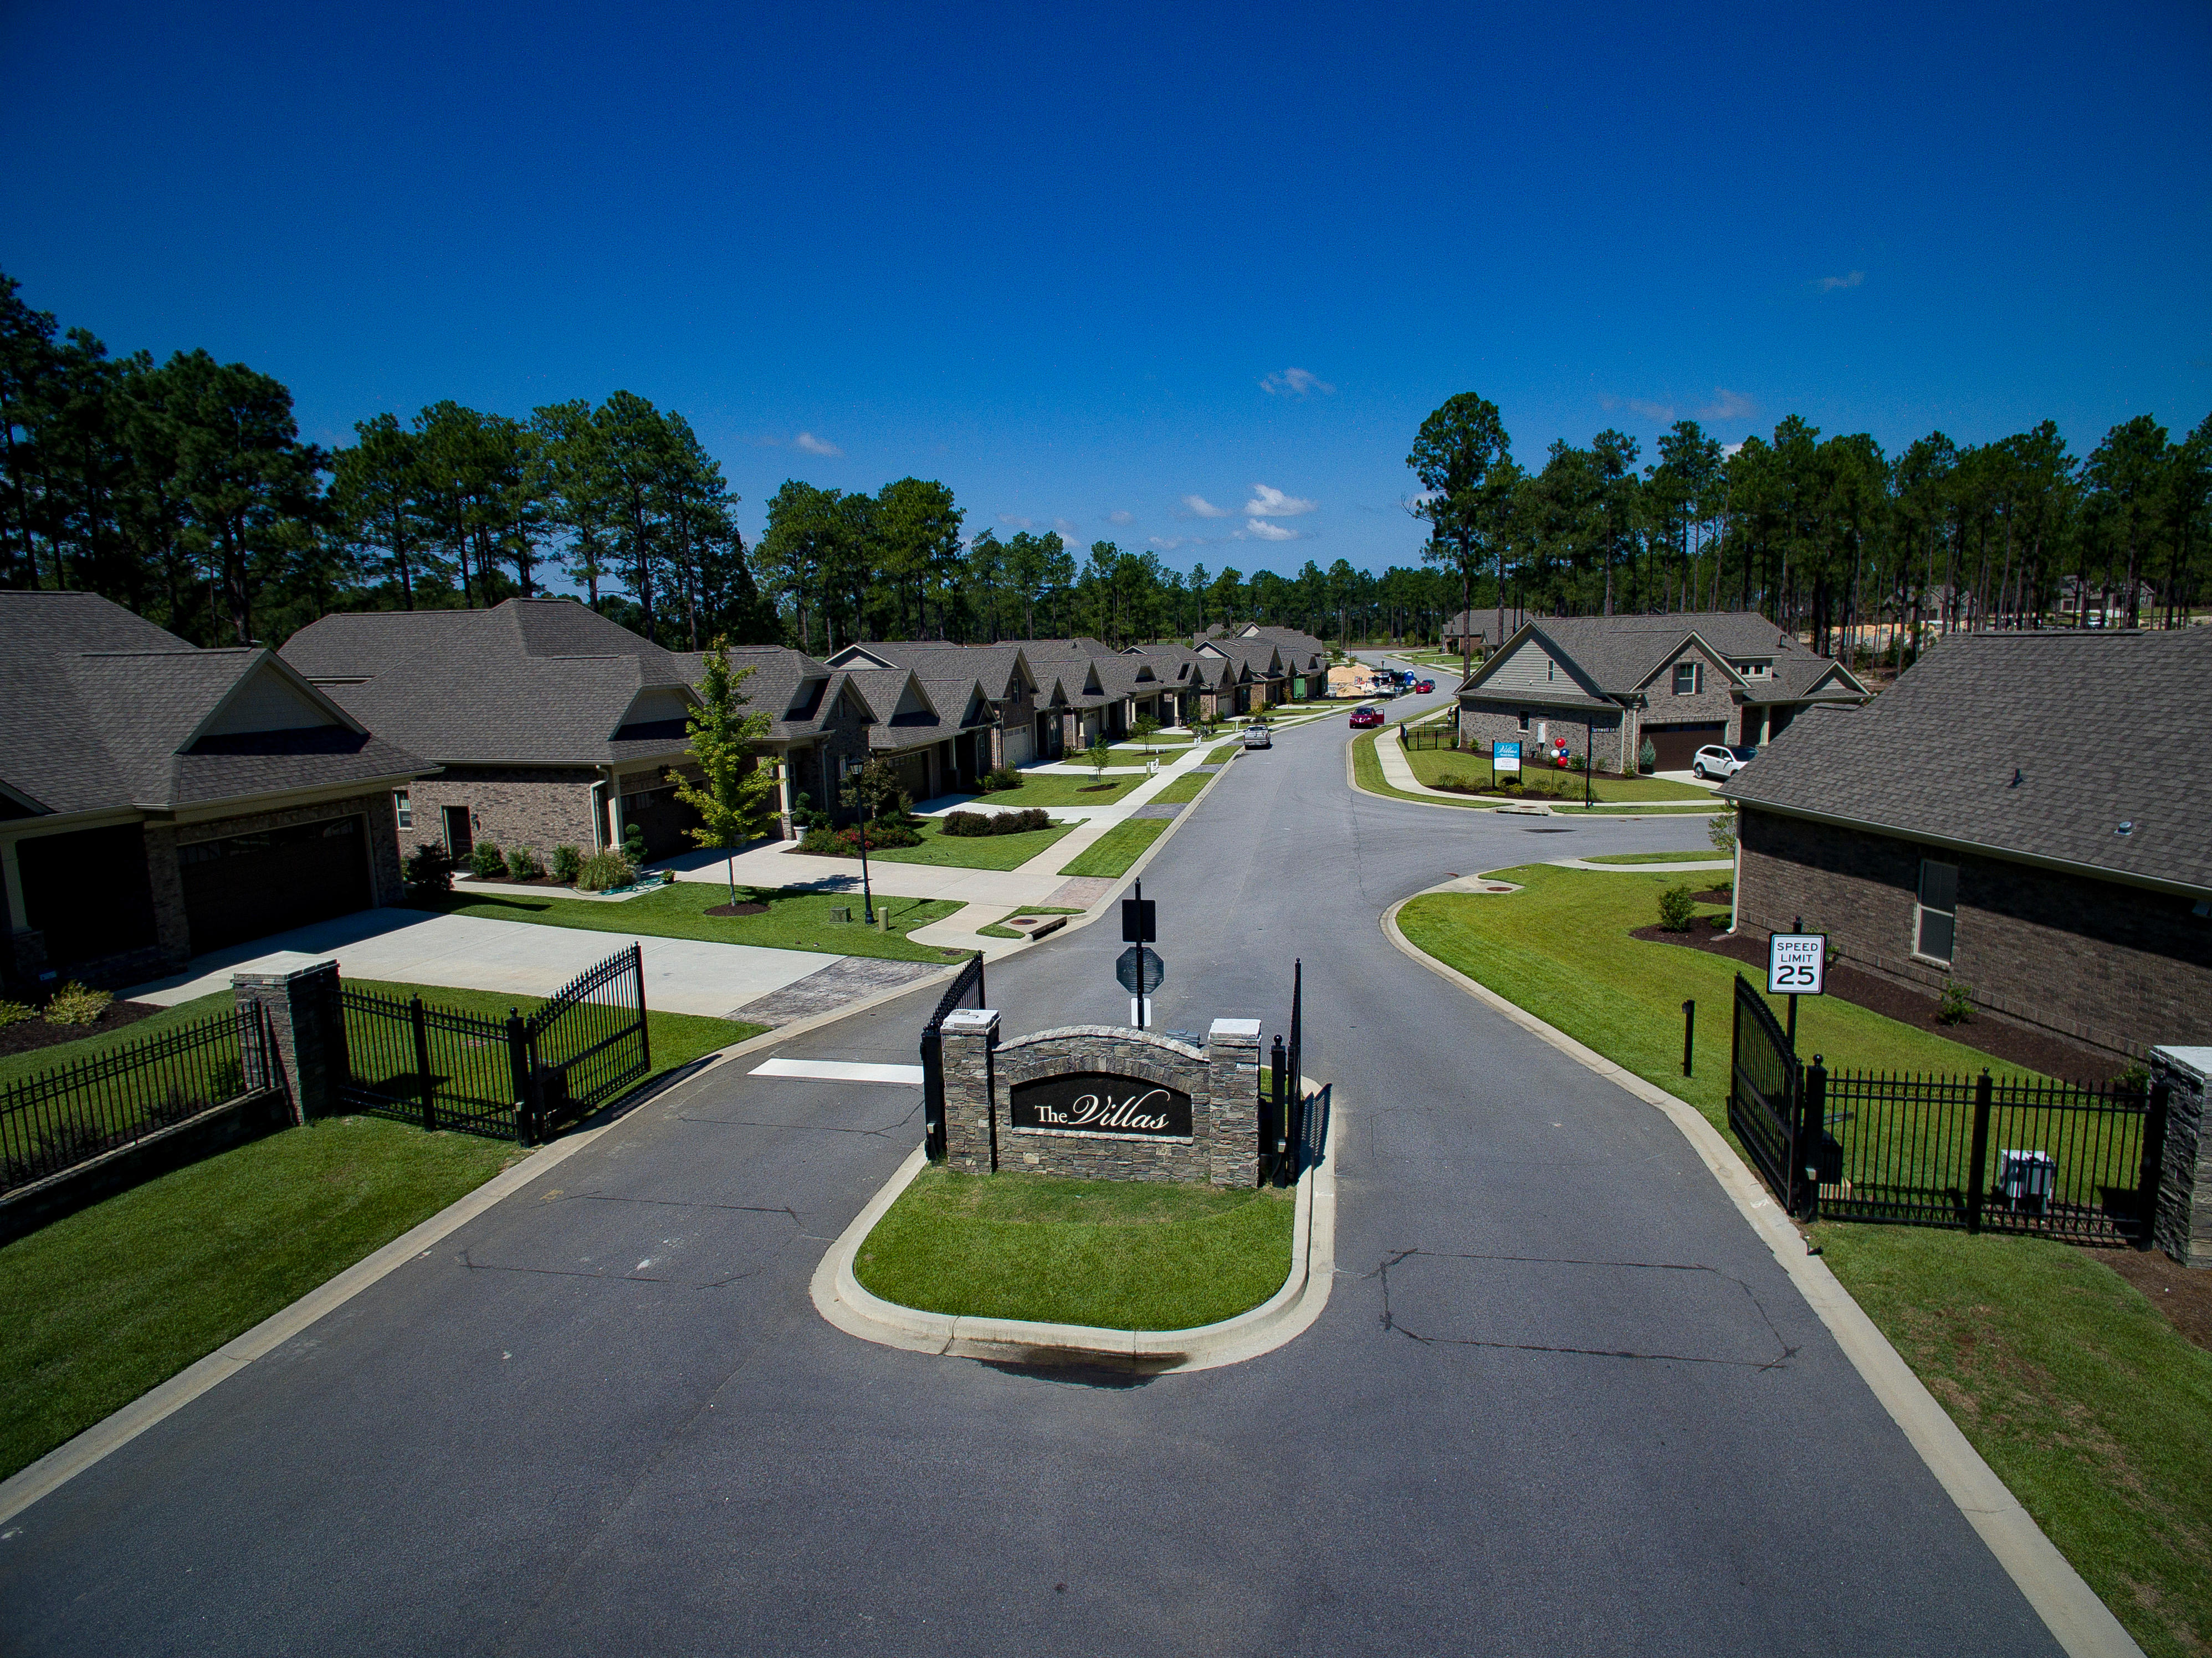 Woodcreek Farms Luxury Homes Executive Construction Homes image 2